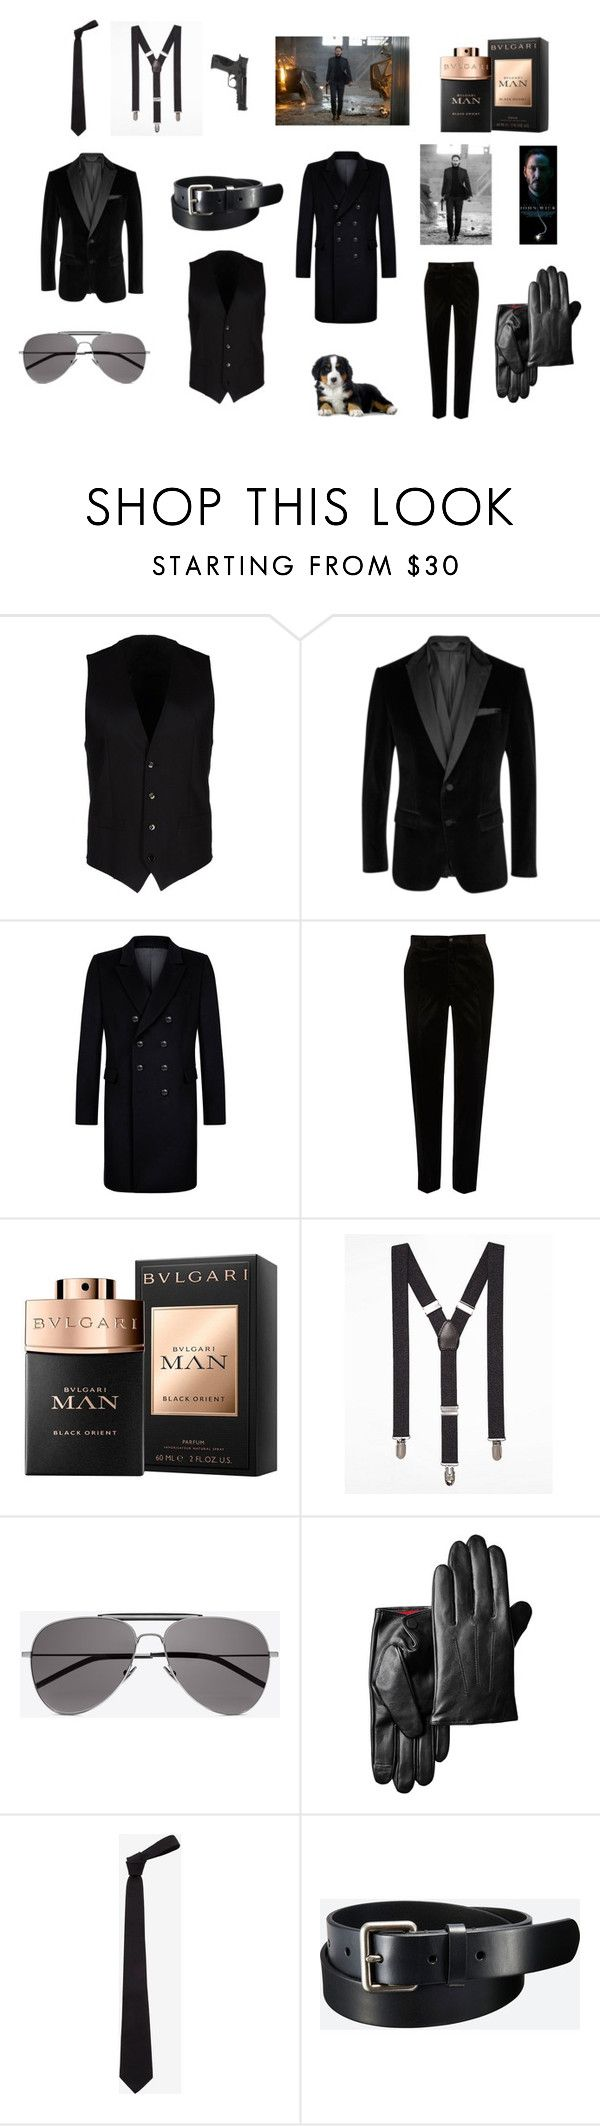 """John Wick-Hitman"" by dorian1890 on Polyvore featuring Dolce&Gabbana, BOSS Black, Kumeth, River Island, Express, Yves Saint Laurent, Alexander McQueen, Uniqlo, Smith & Wesson ve men's fashion"